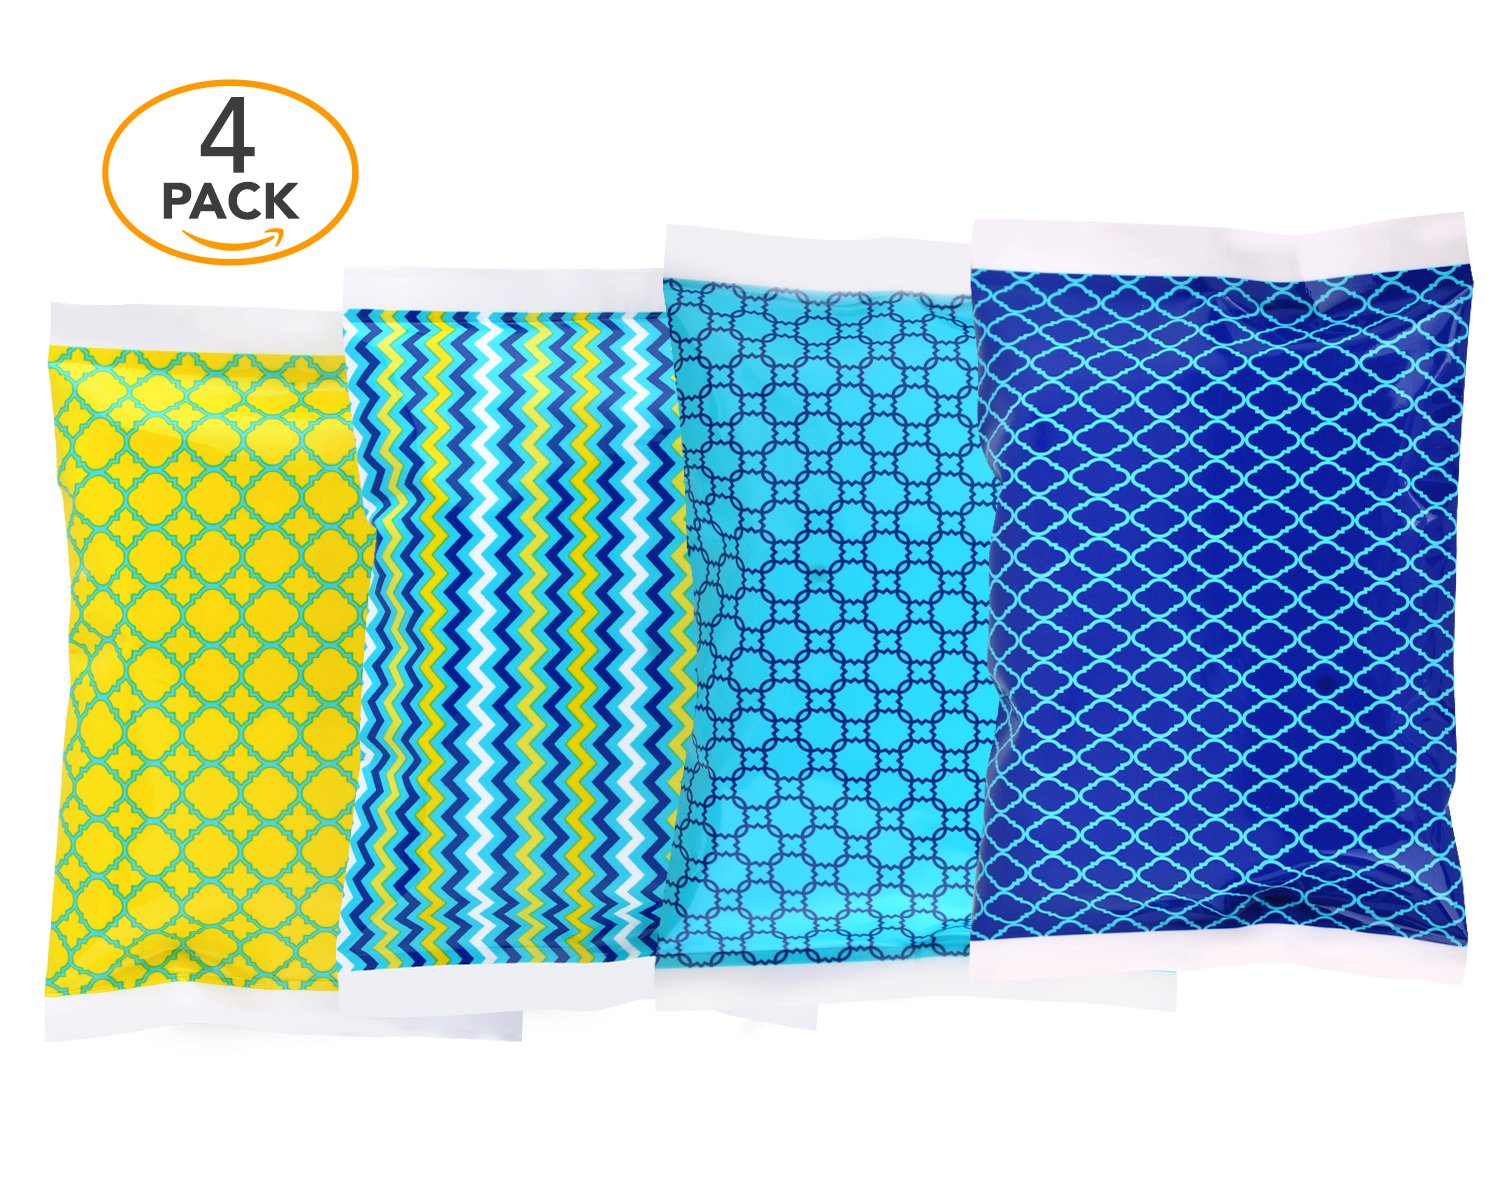 Ice Pack for Lunch Boxes - 4 Reusable Packs - Classic Prints - Keeps Food Cold – Cool Print Bag Designs - Great for Kids or Adults Lunchbox and Cooler Thrive